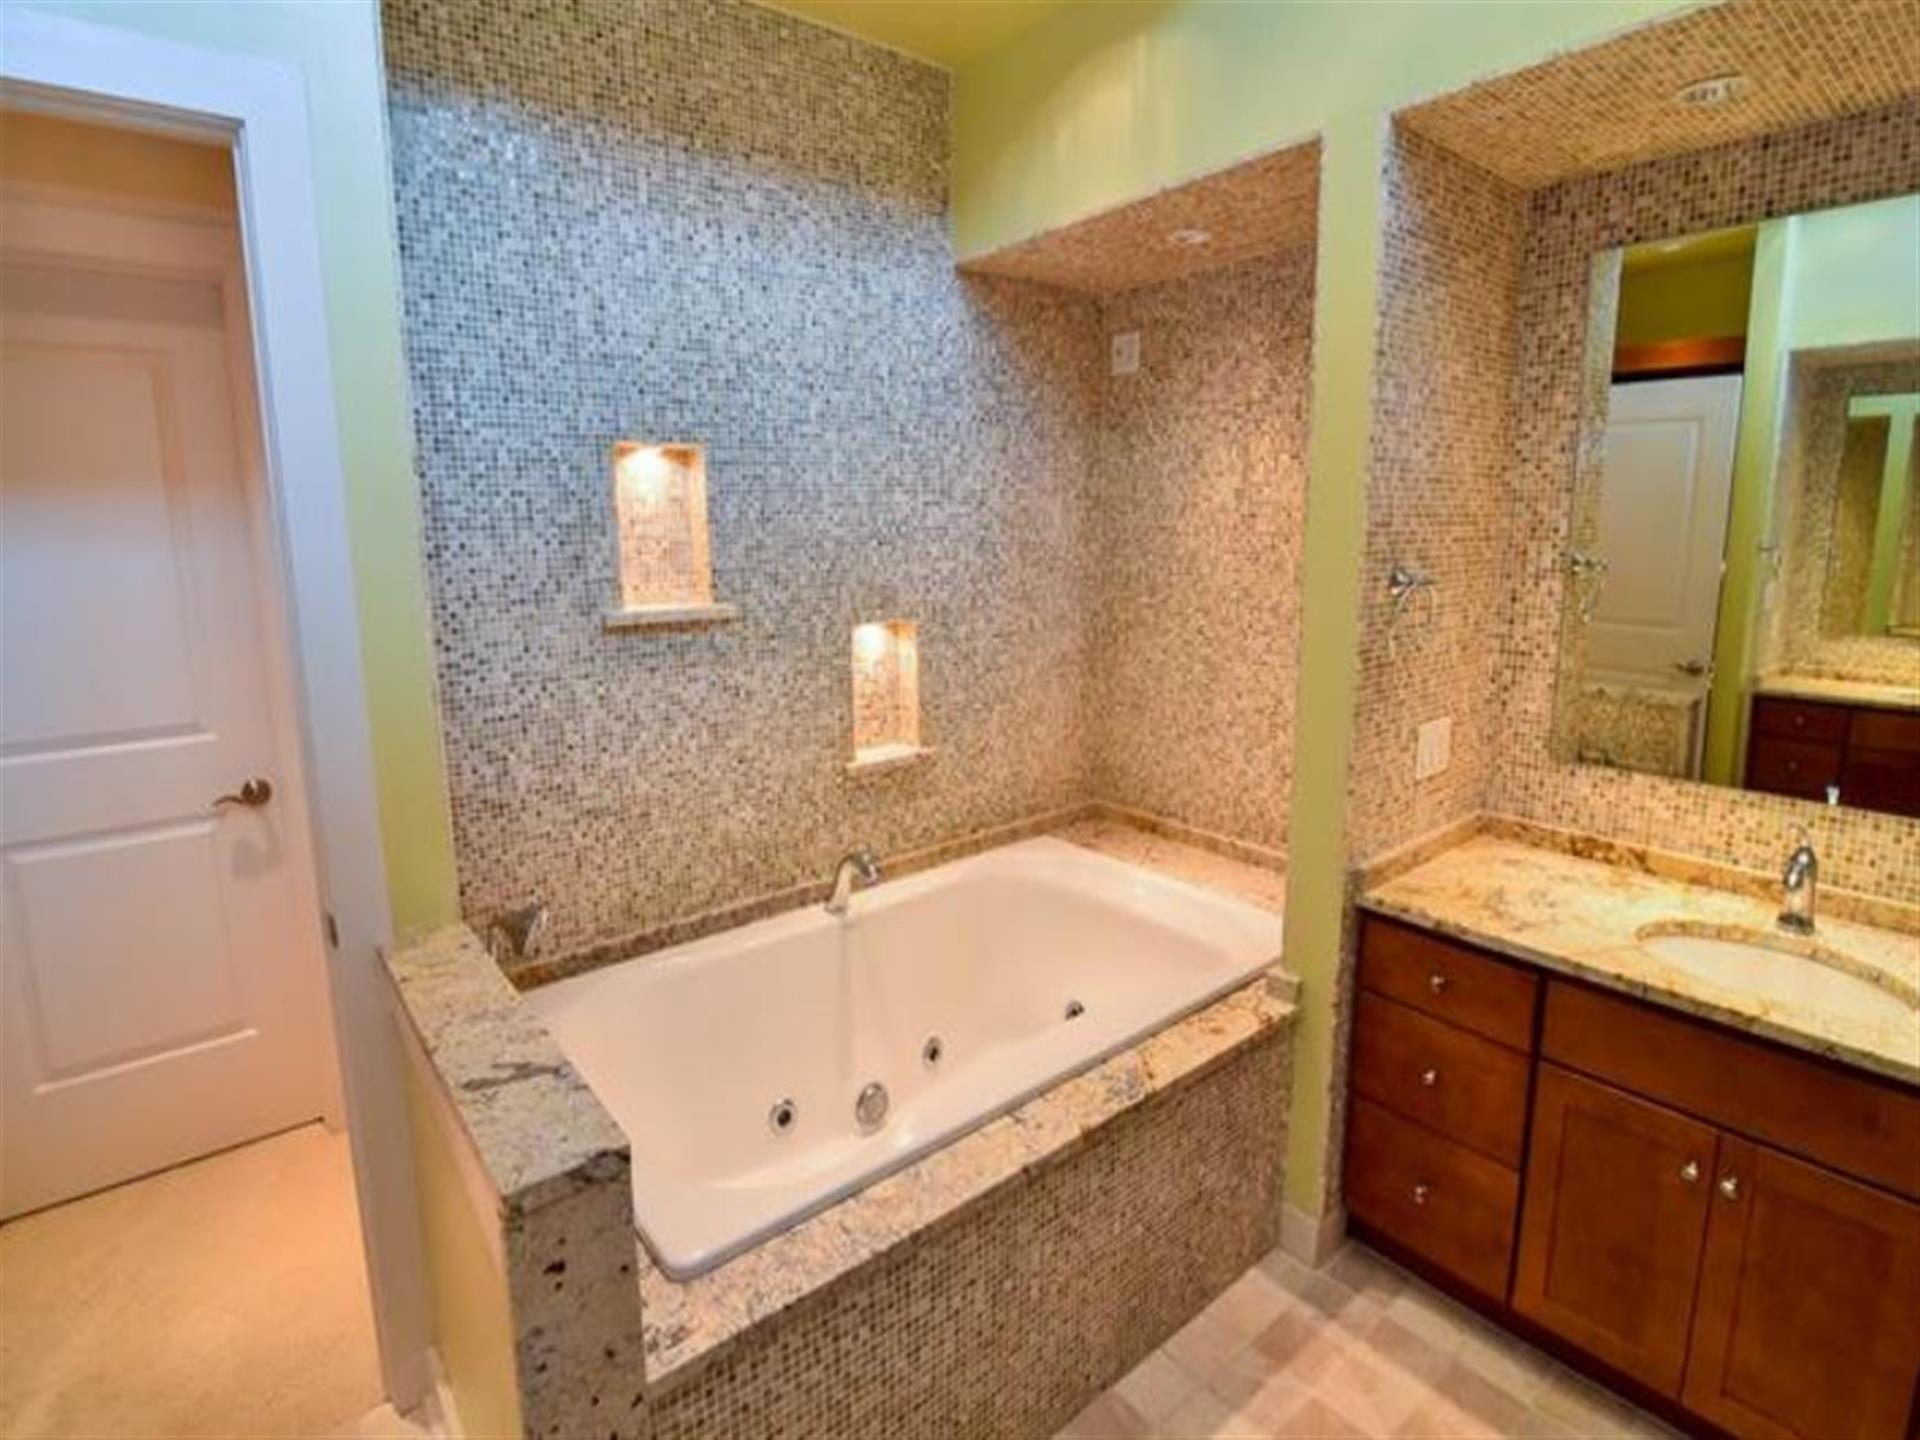 One bathroom with speckled tiles, a tub and a counter with a sink